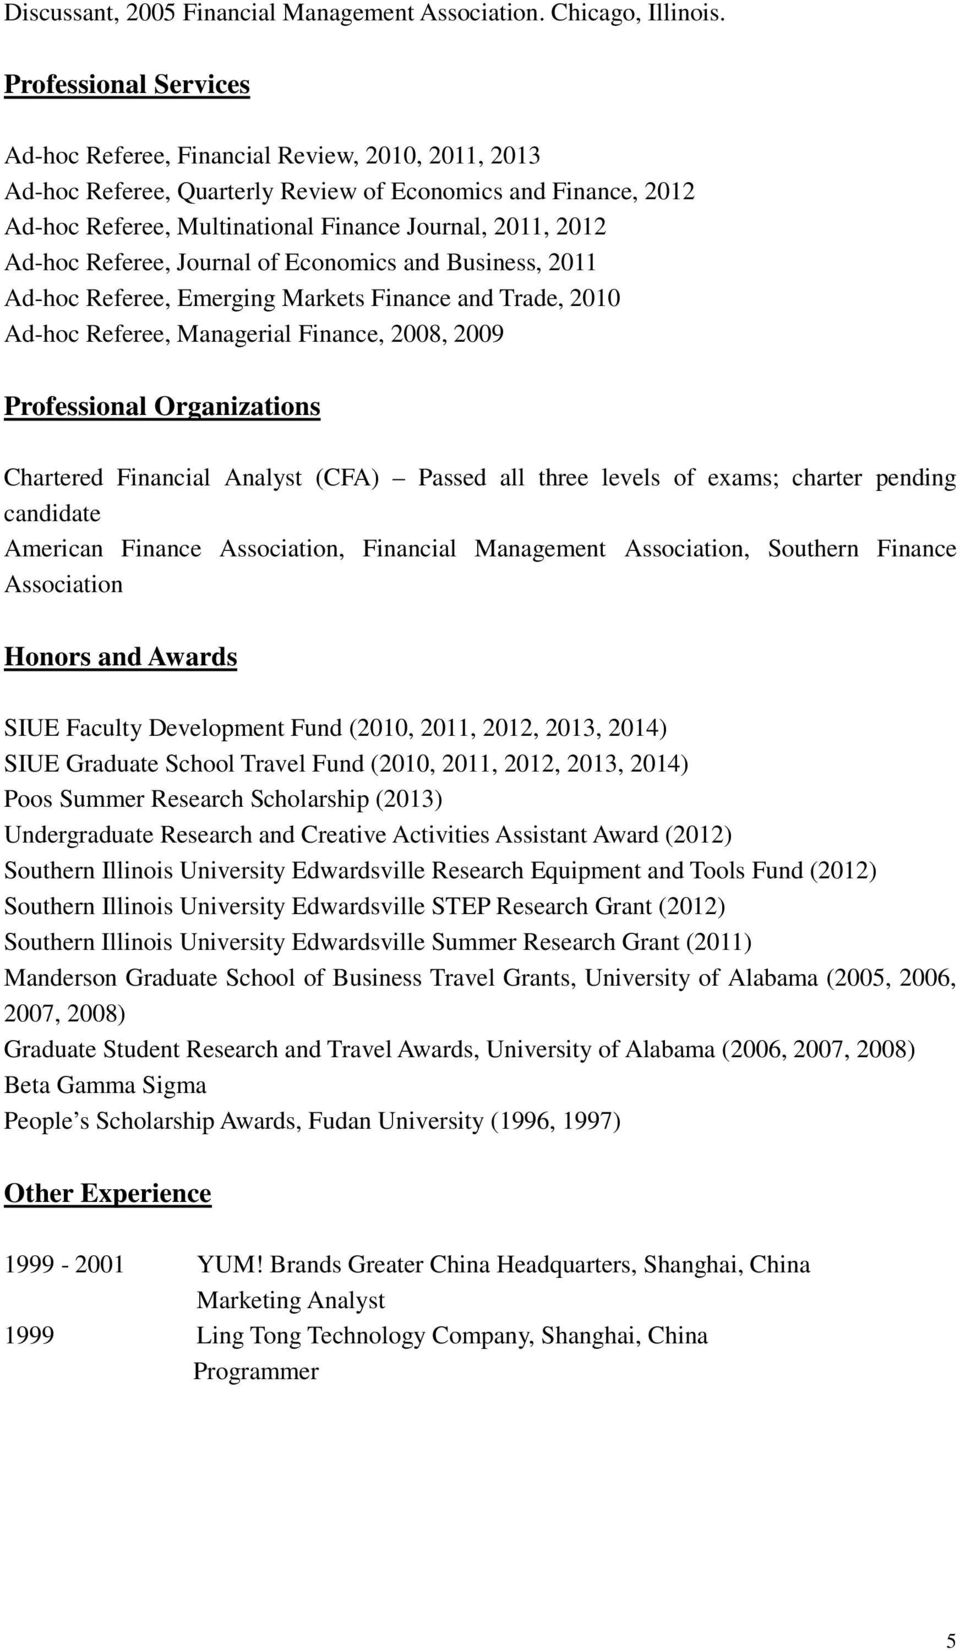 Ad-hoc Referee, Journal of Economics and Business, 2011 Ad-hoc Referee, Emerging Markets Finance and Trade, 2010 Ad-hoc Referee, Managerial Finance, 2008, 2009 Professional Organizations Chartered